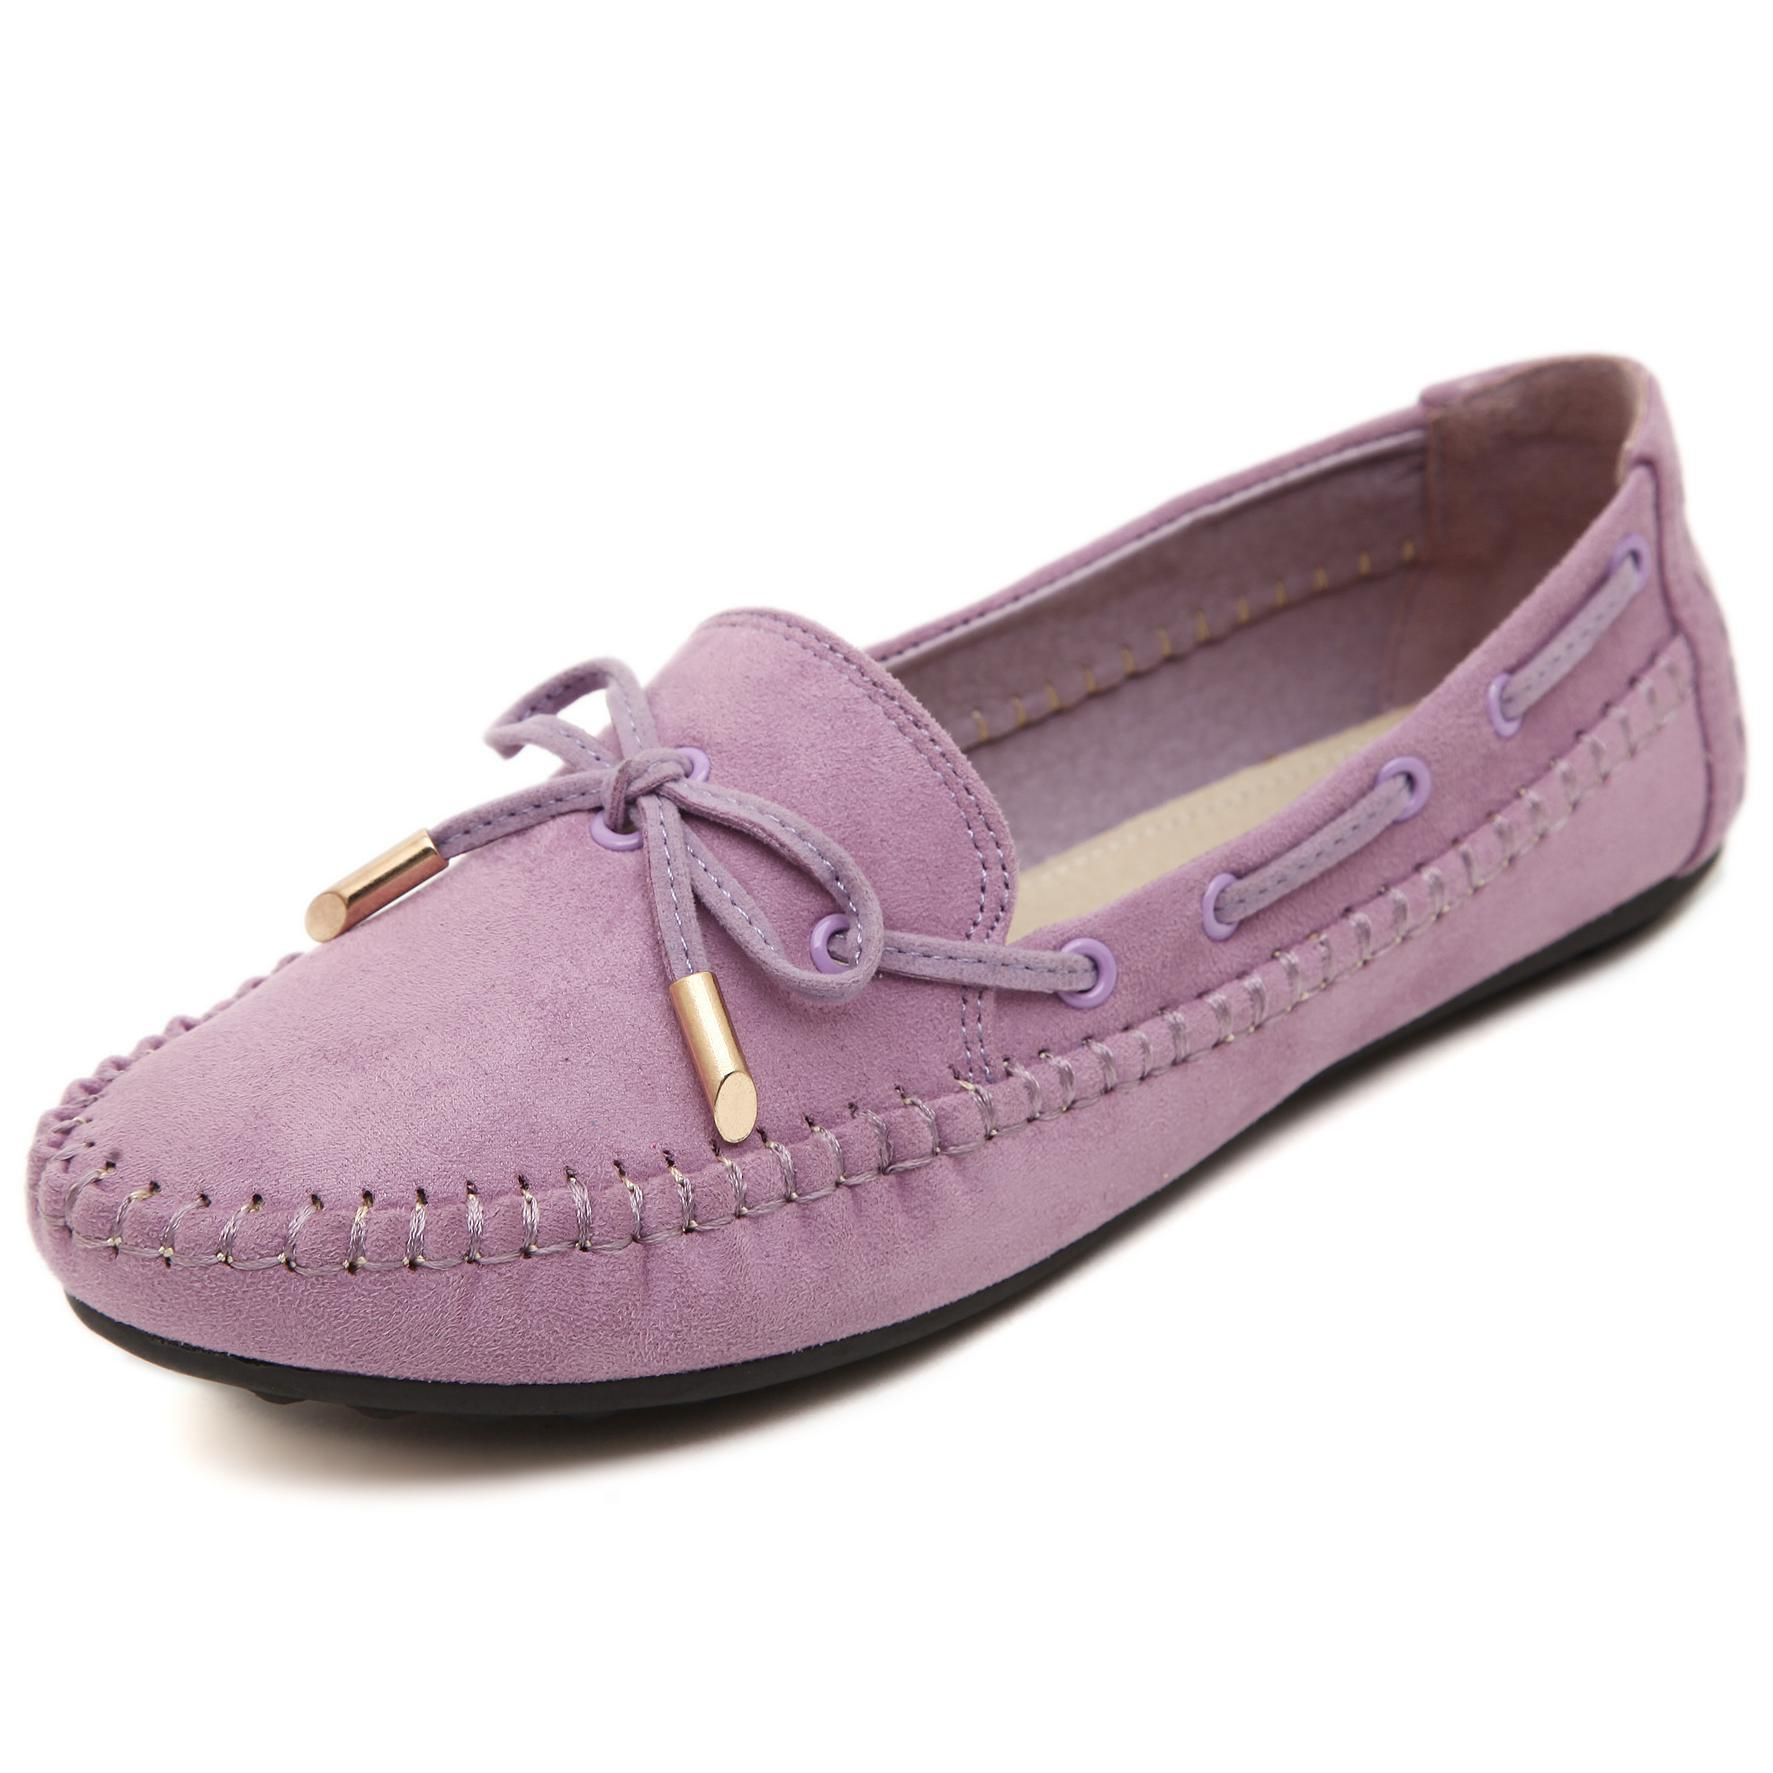 Moccasin Women Flats Shoes Genuine Leather Loafers Ladies Round Toe Bow Ribbon Slip On Loafer Women Shoes Comfortable Flat 35~41 new round toe slip on women loafers fashion bow patent leather women flat shoes ladies casual flats big size 34 43 women oxfords